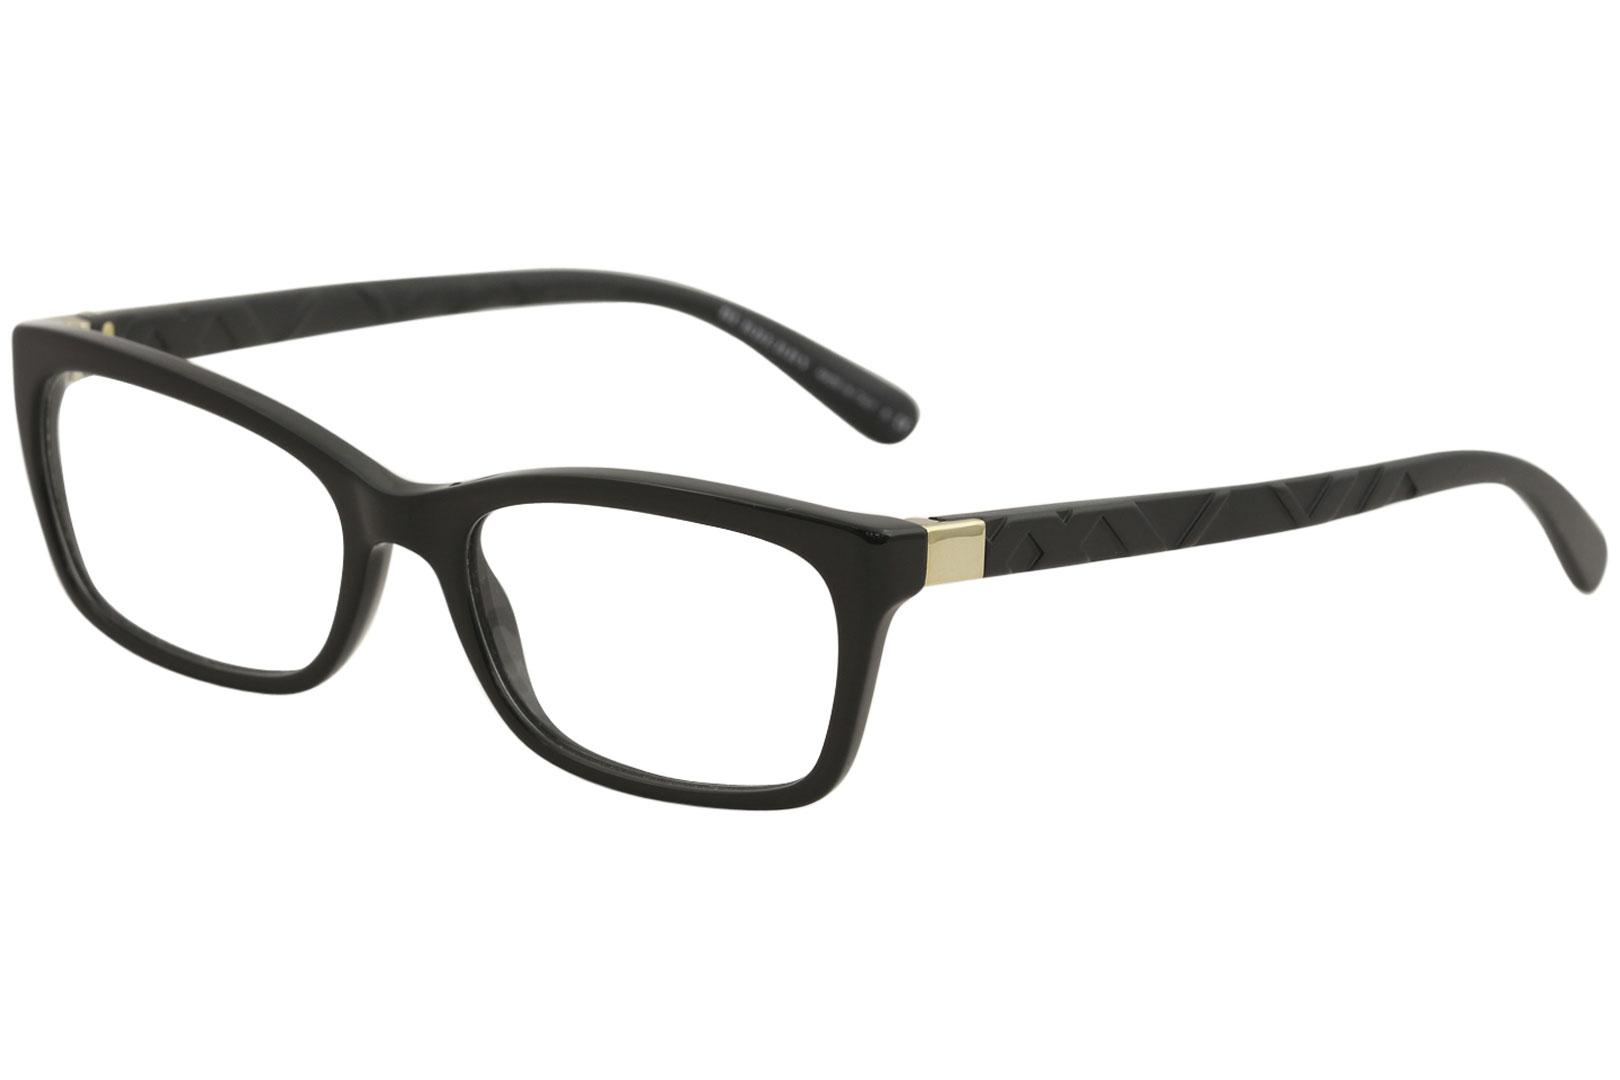 2100d33eb1a5 Burberry Women s Eyeglasses BE2220 BE 2220 Full Rim Optical Frame by  Burberry